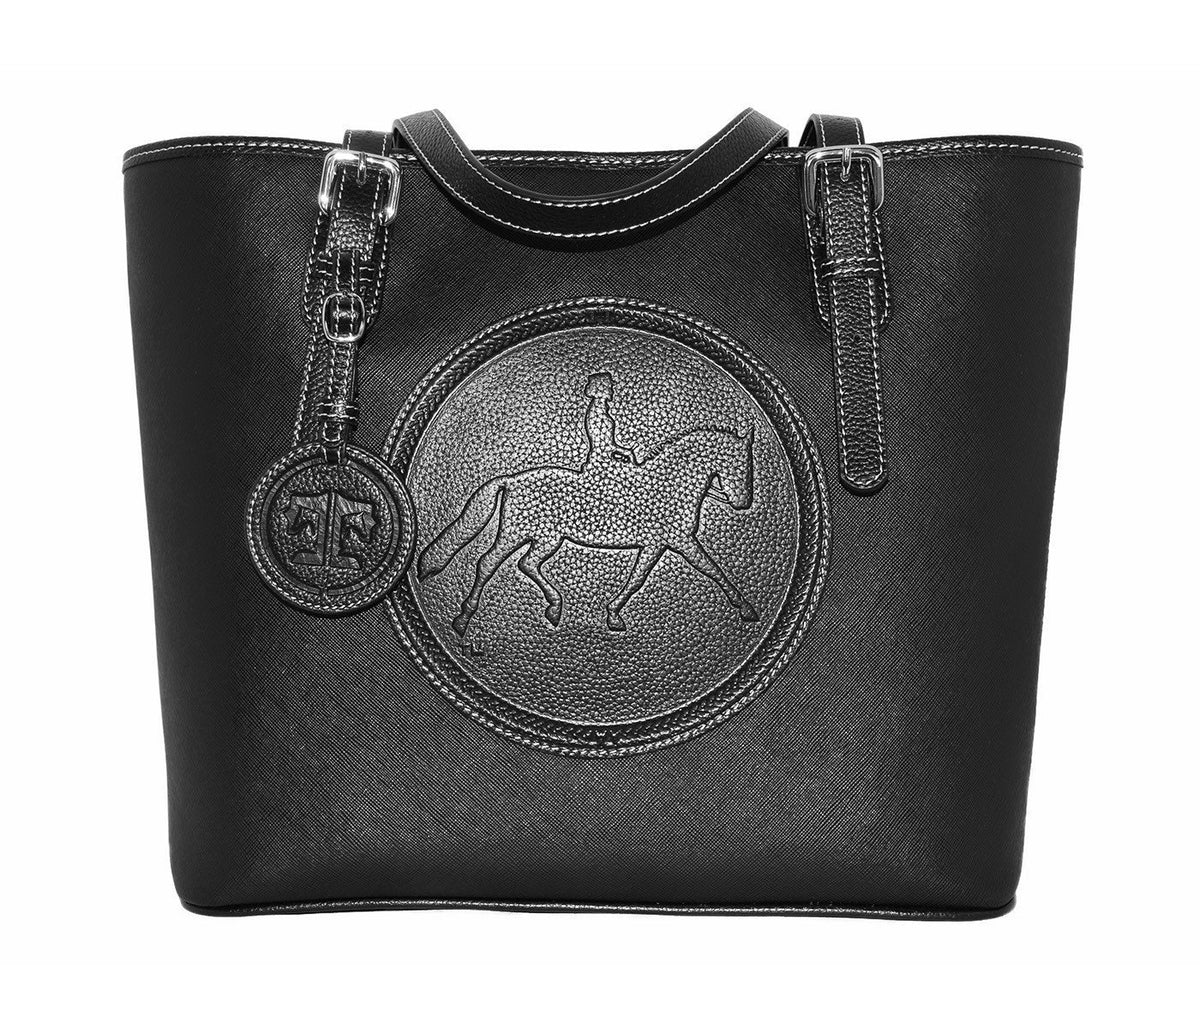 Tucker Tweed Leather Handbags Black The James River Carry All: Dressage